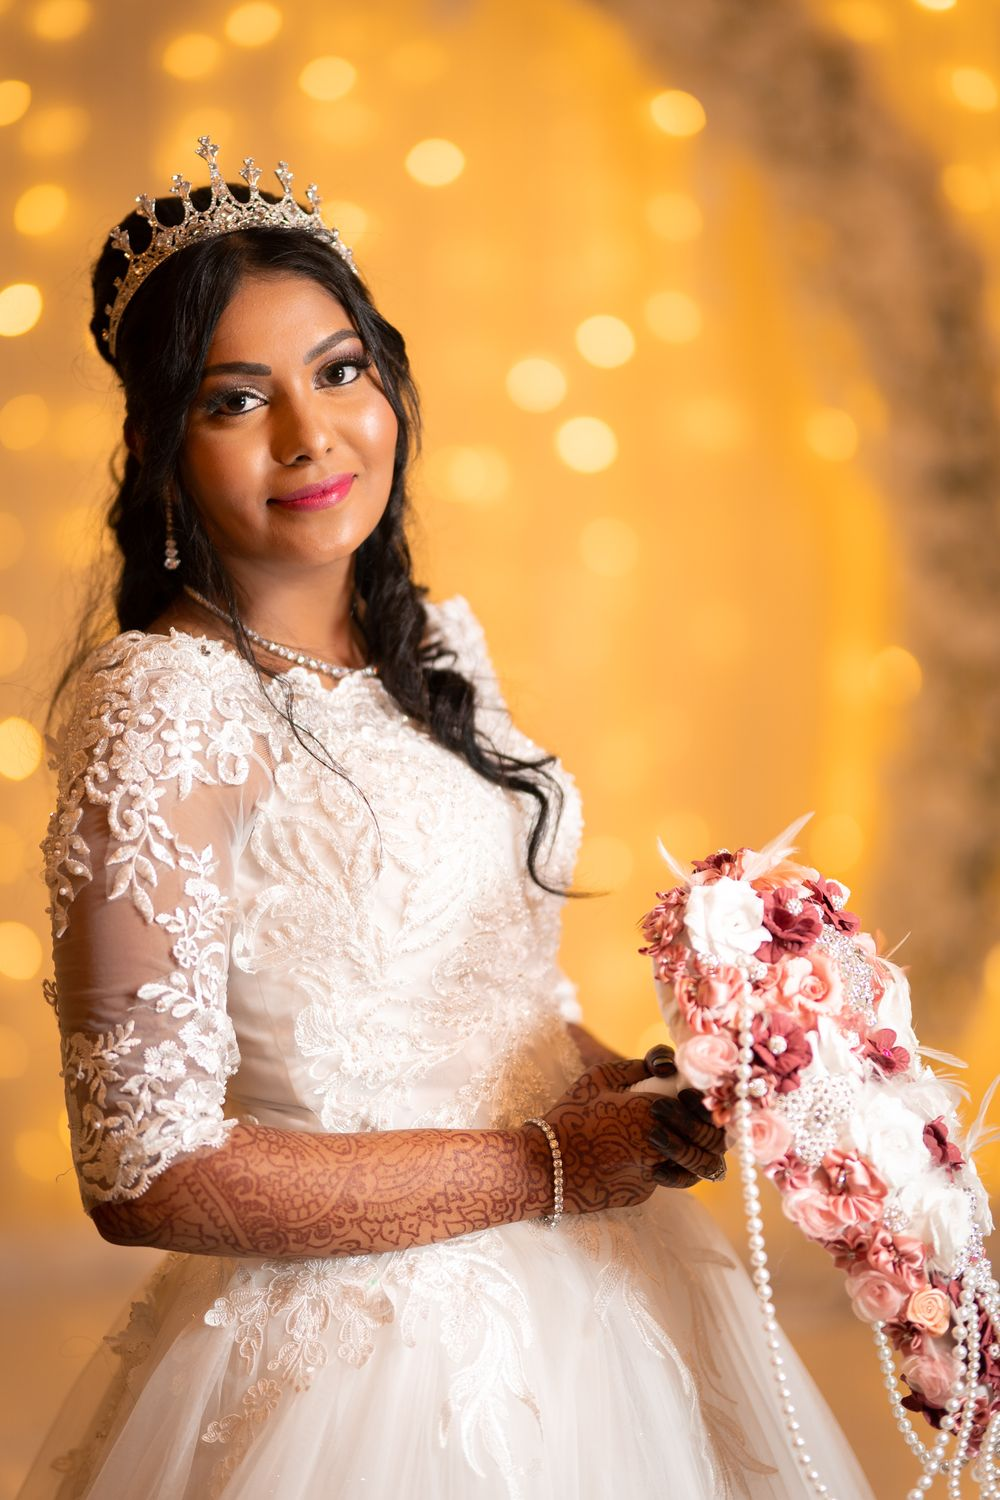 media king indian hindu muslim bride bokeh wedding photography and wedding videography in Durban KZN